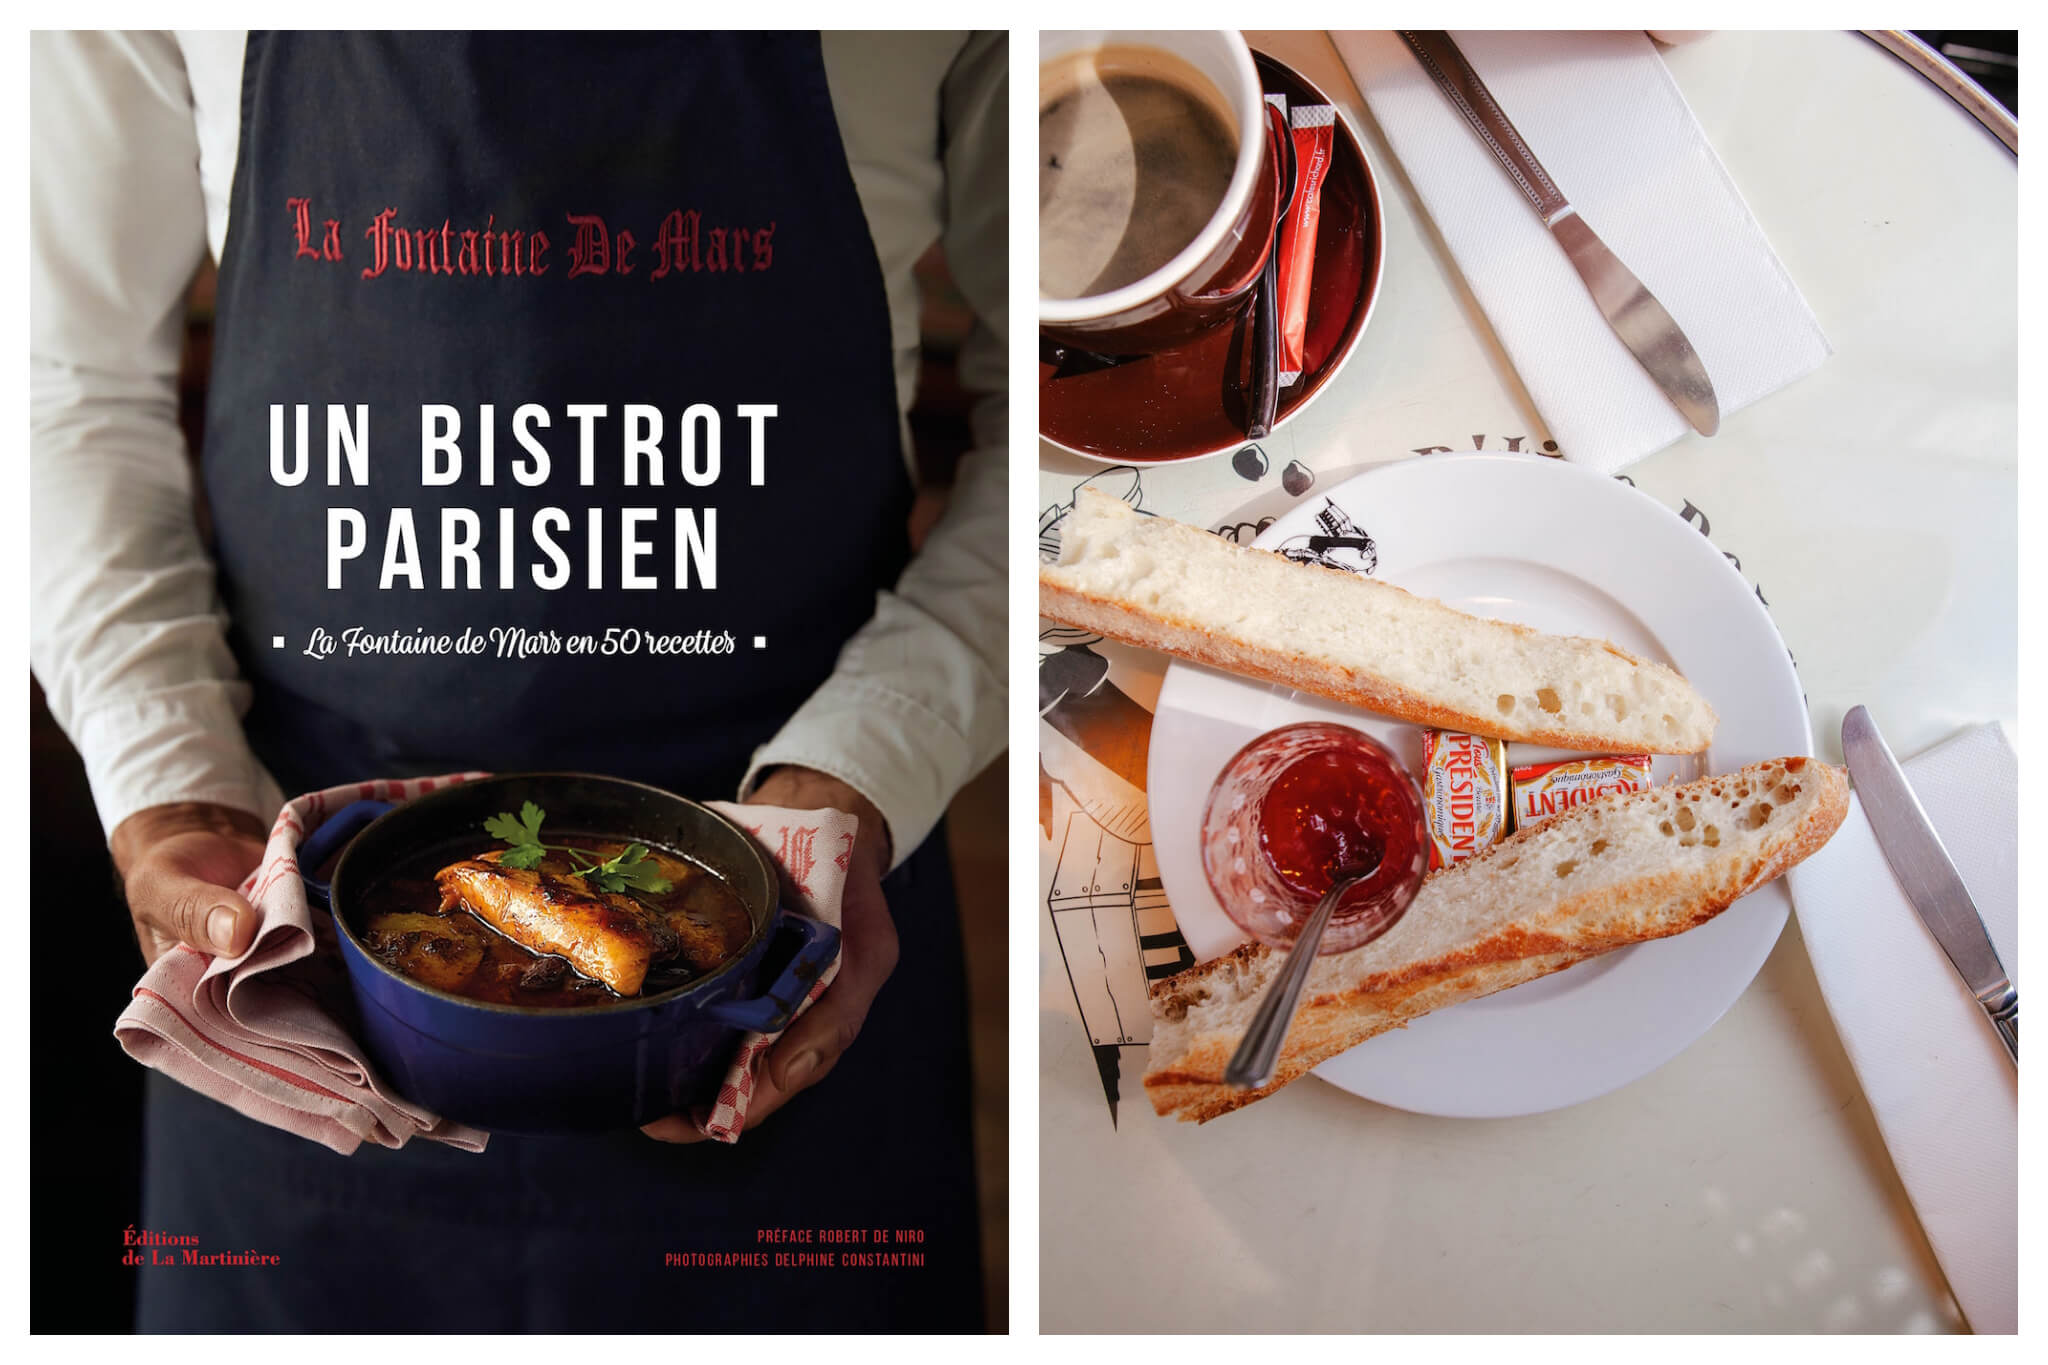 Left: The cover of A Parisian Bistro cookbook, Right: A cup of espresso, sliced baguette, pats of butter and a cup of jam sit atop a white table.